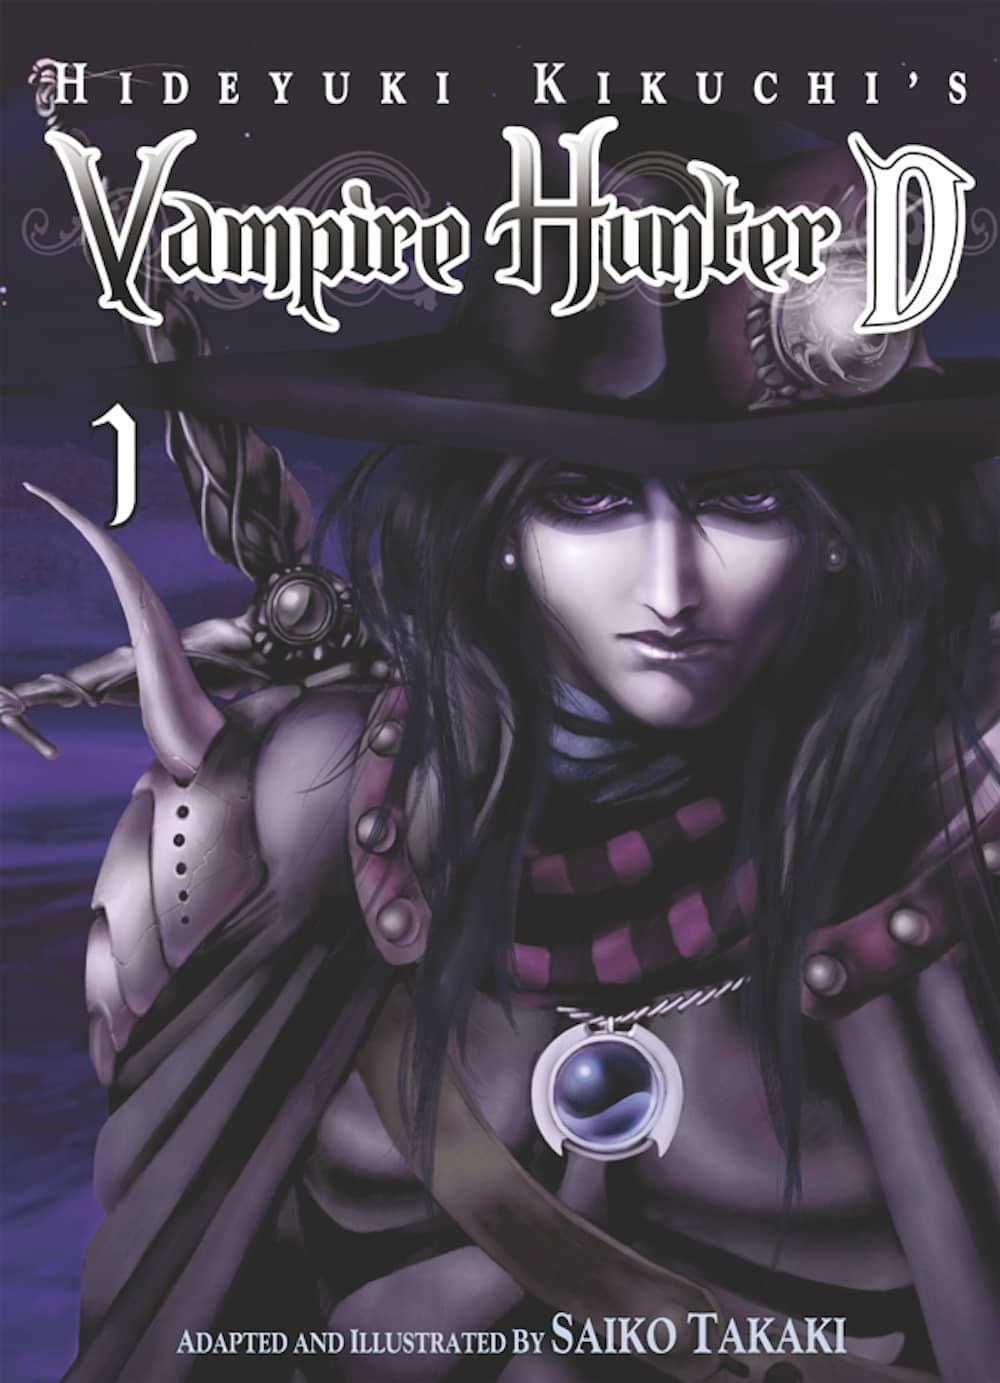 VAMPIRE HUNTER D 01 (COMIC)